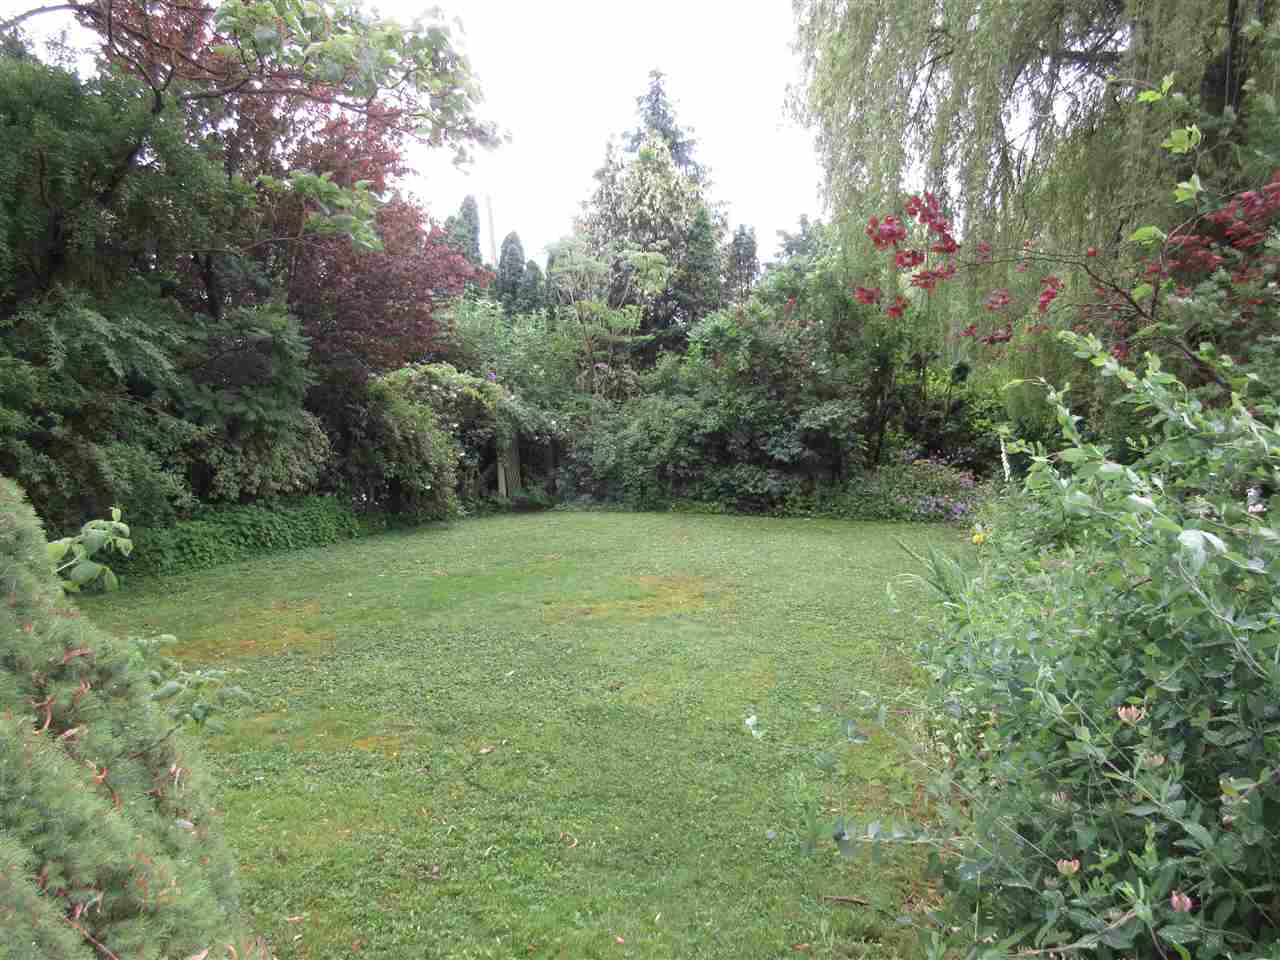 Photo 4: 45625 WORTHINGTON Place in Sardis: Sardis West Vedder Rd House for sale : MLS(r) # R2176017